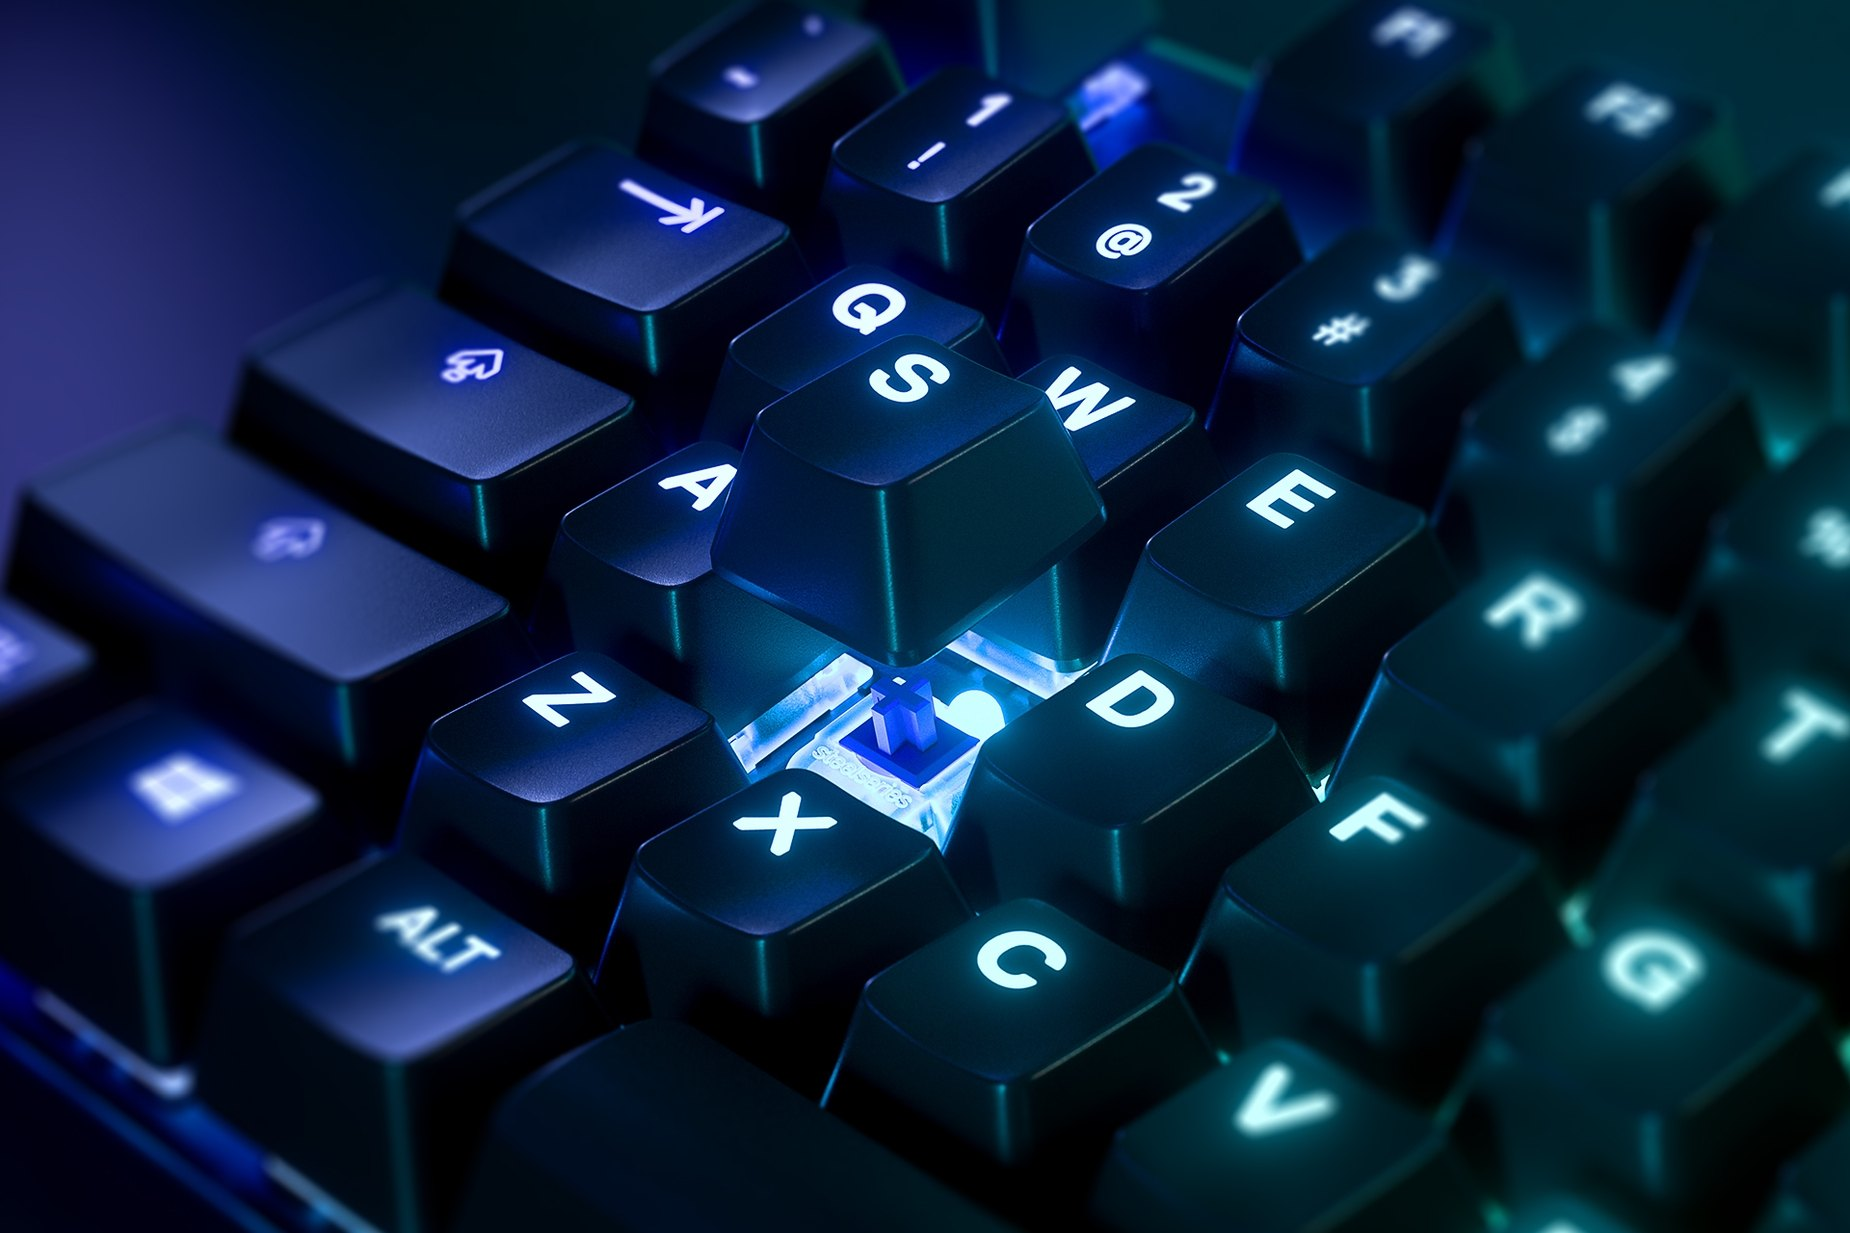 Zoomed in view of a single key on the Japanese - Apex 7 (Blue Switch) gaming keyboard, the key is raised up to show the SteelSeries QX2 Mechanical RGB Switch underneath